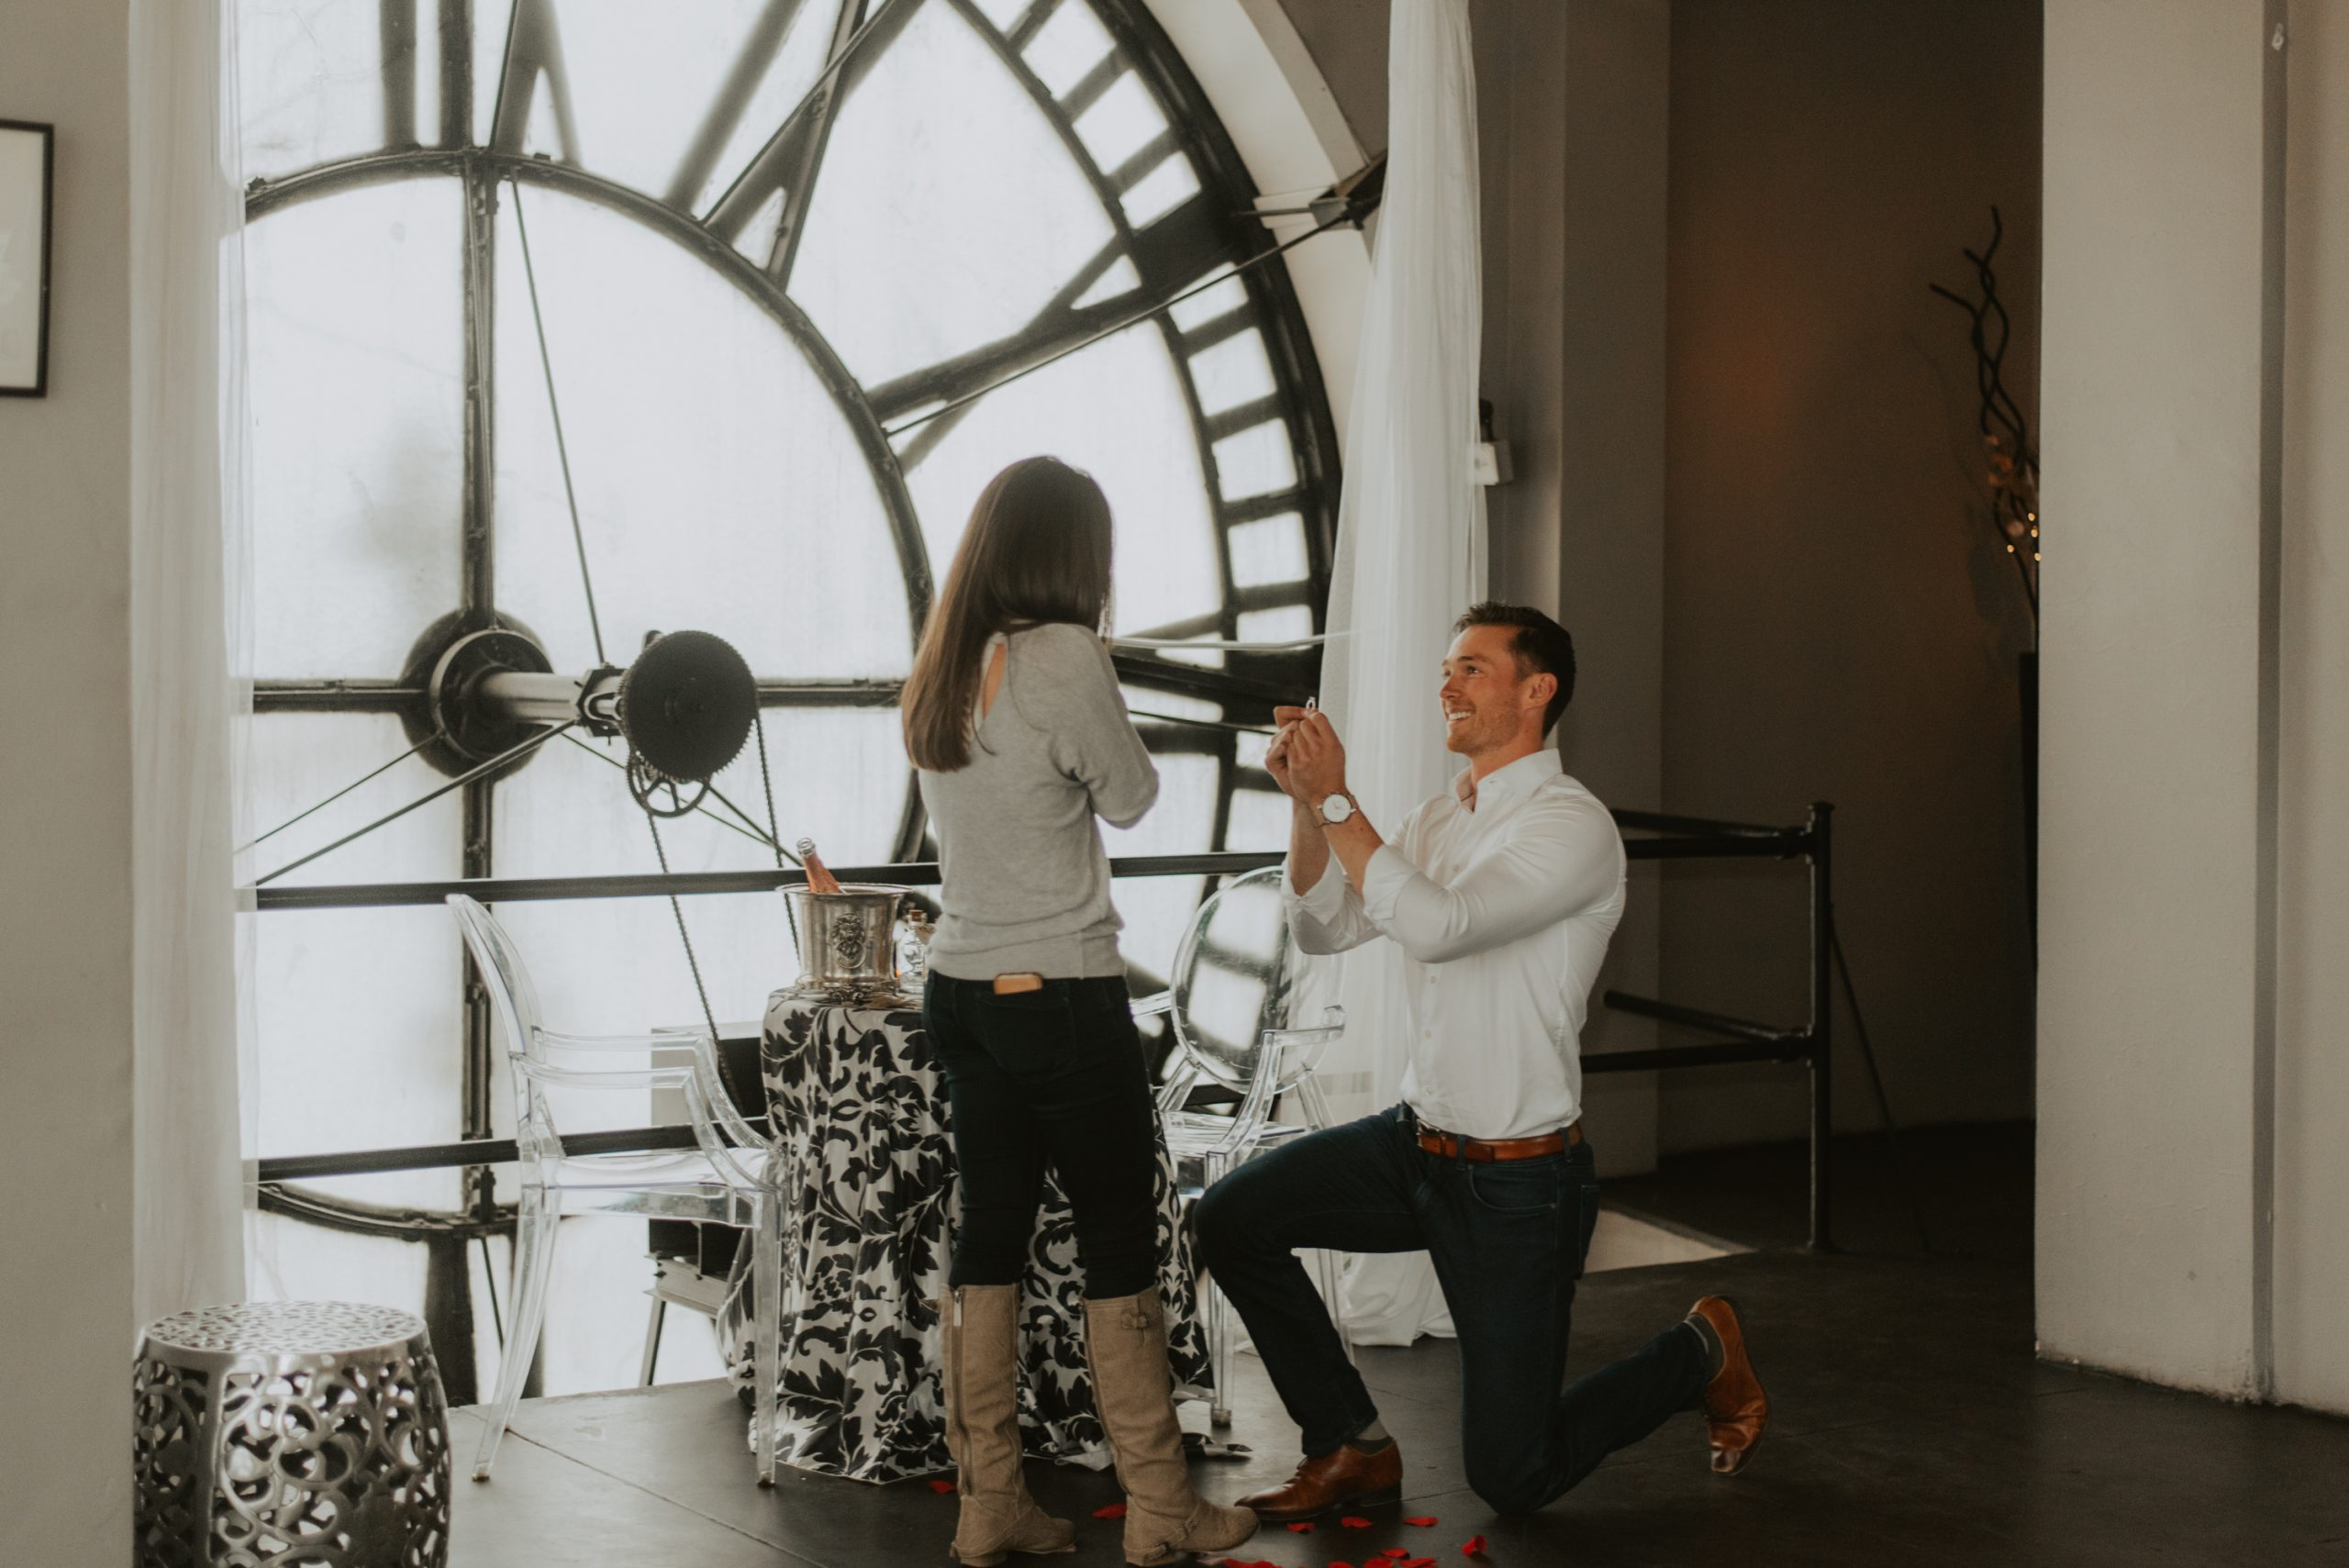 sydney and wills denver proposal at the 16th street clock tower